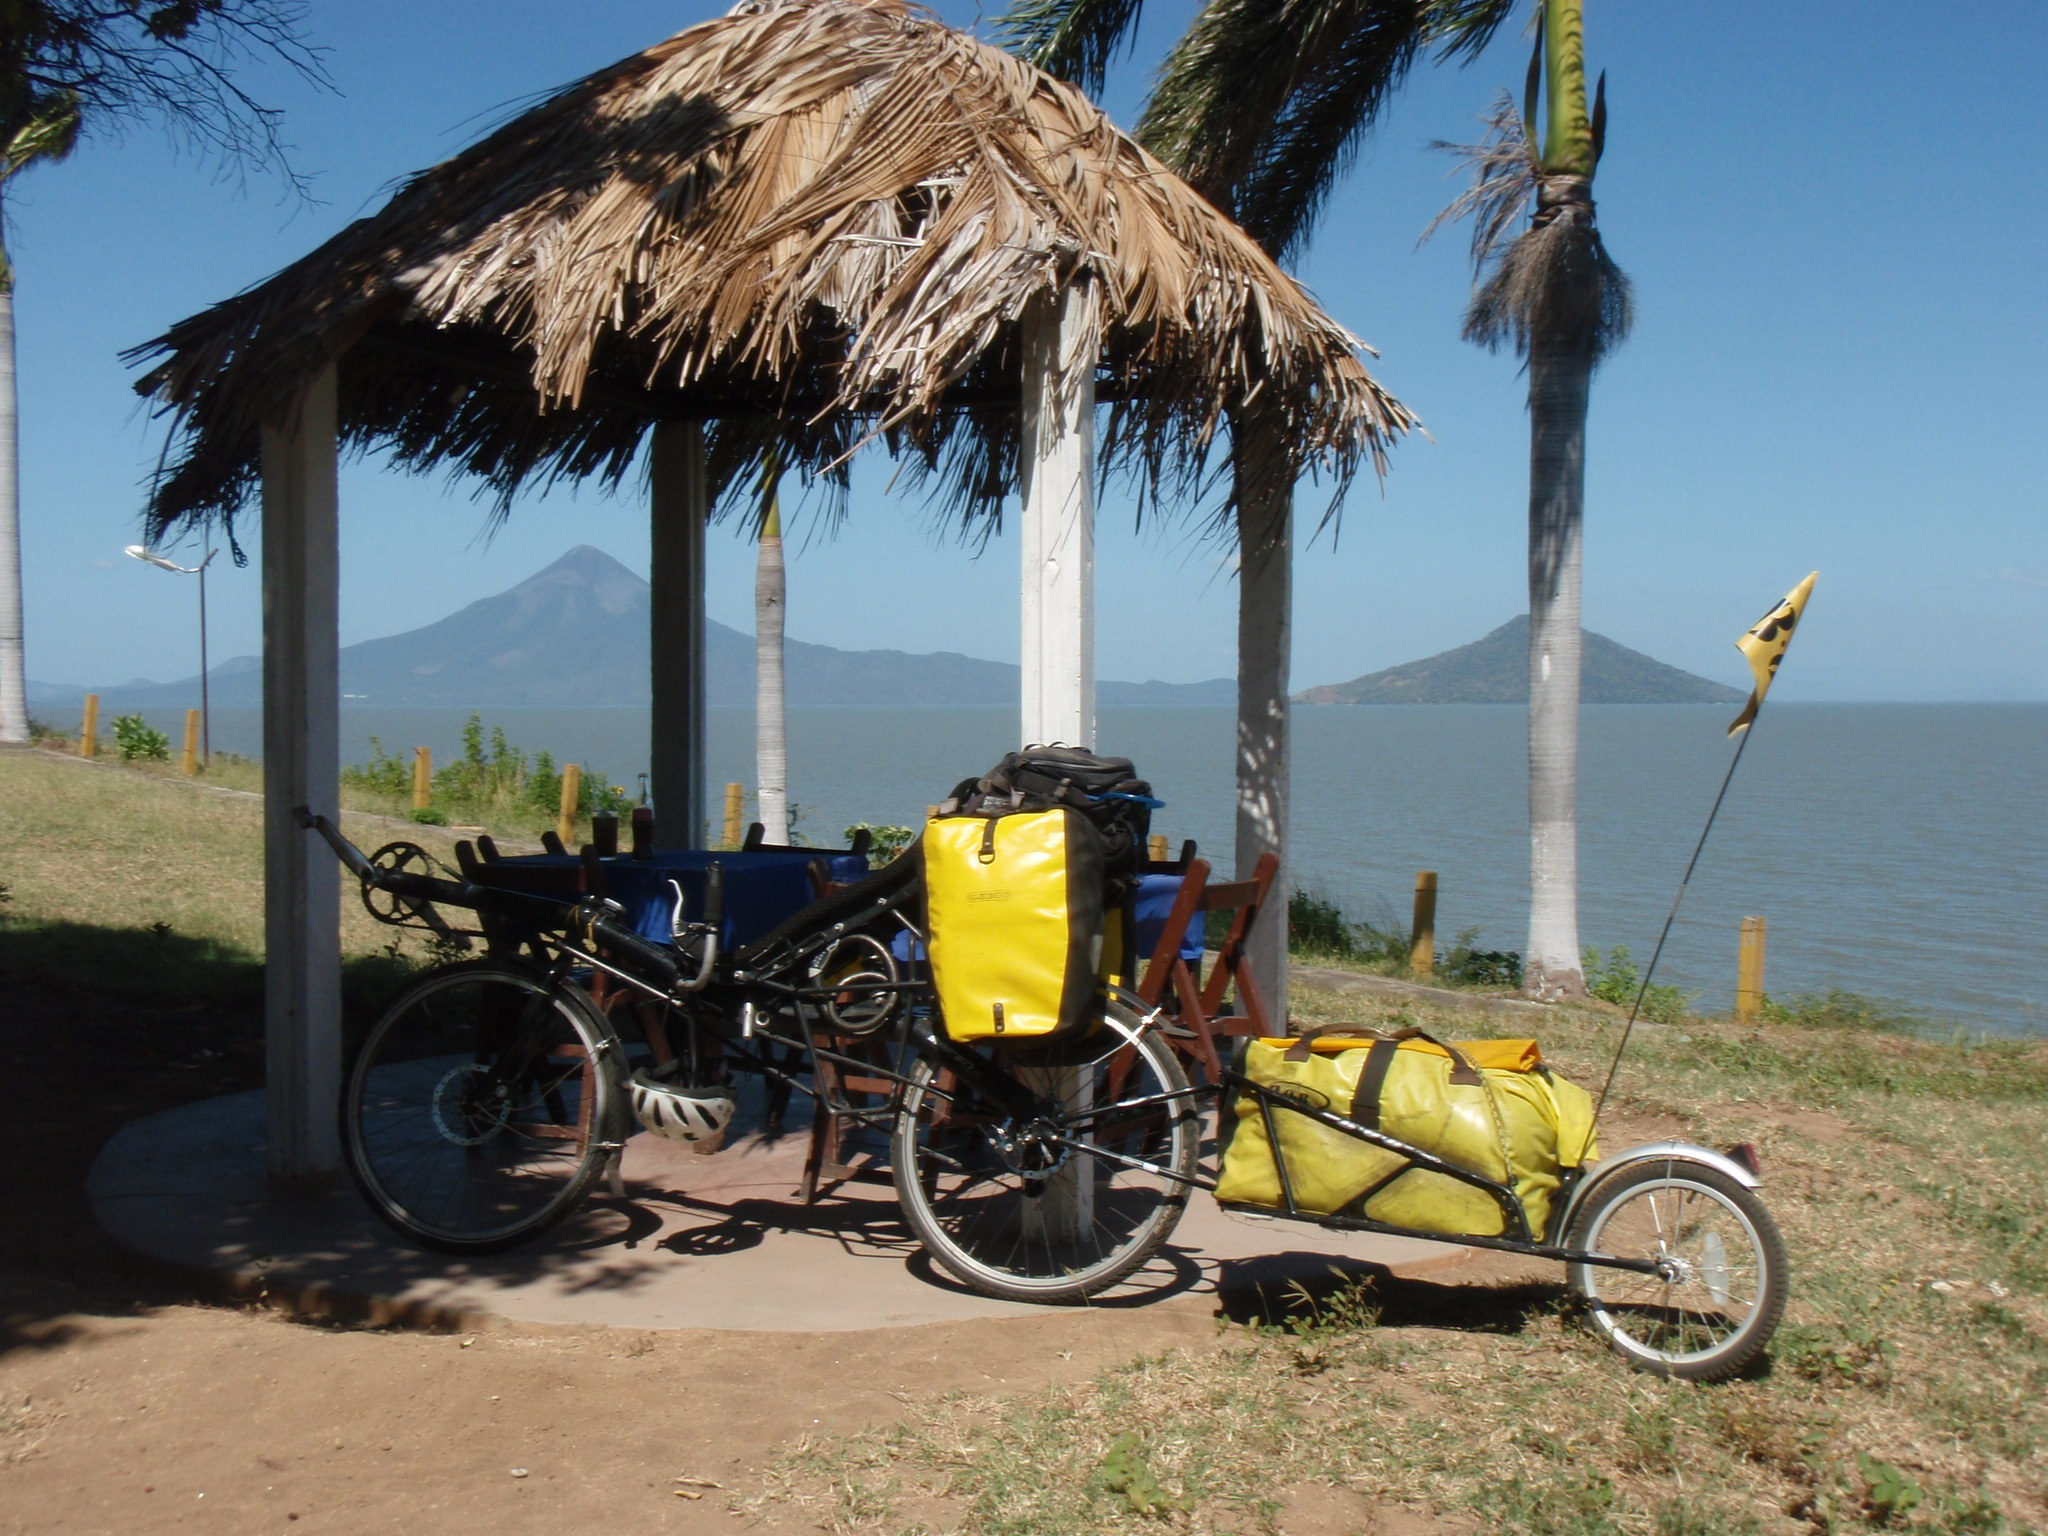 Refreshment stop on shores of Lago de Managua with volcanos